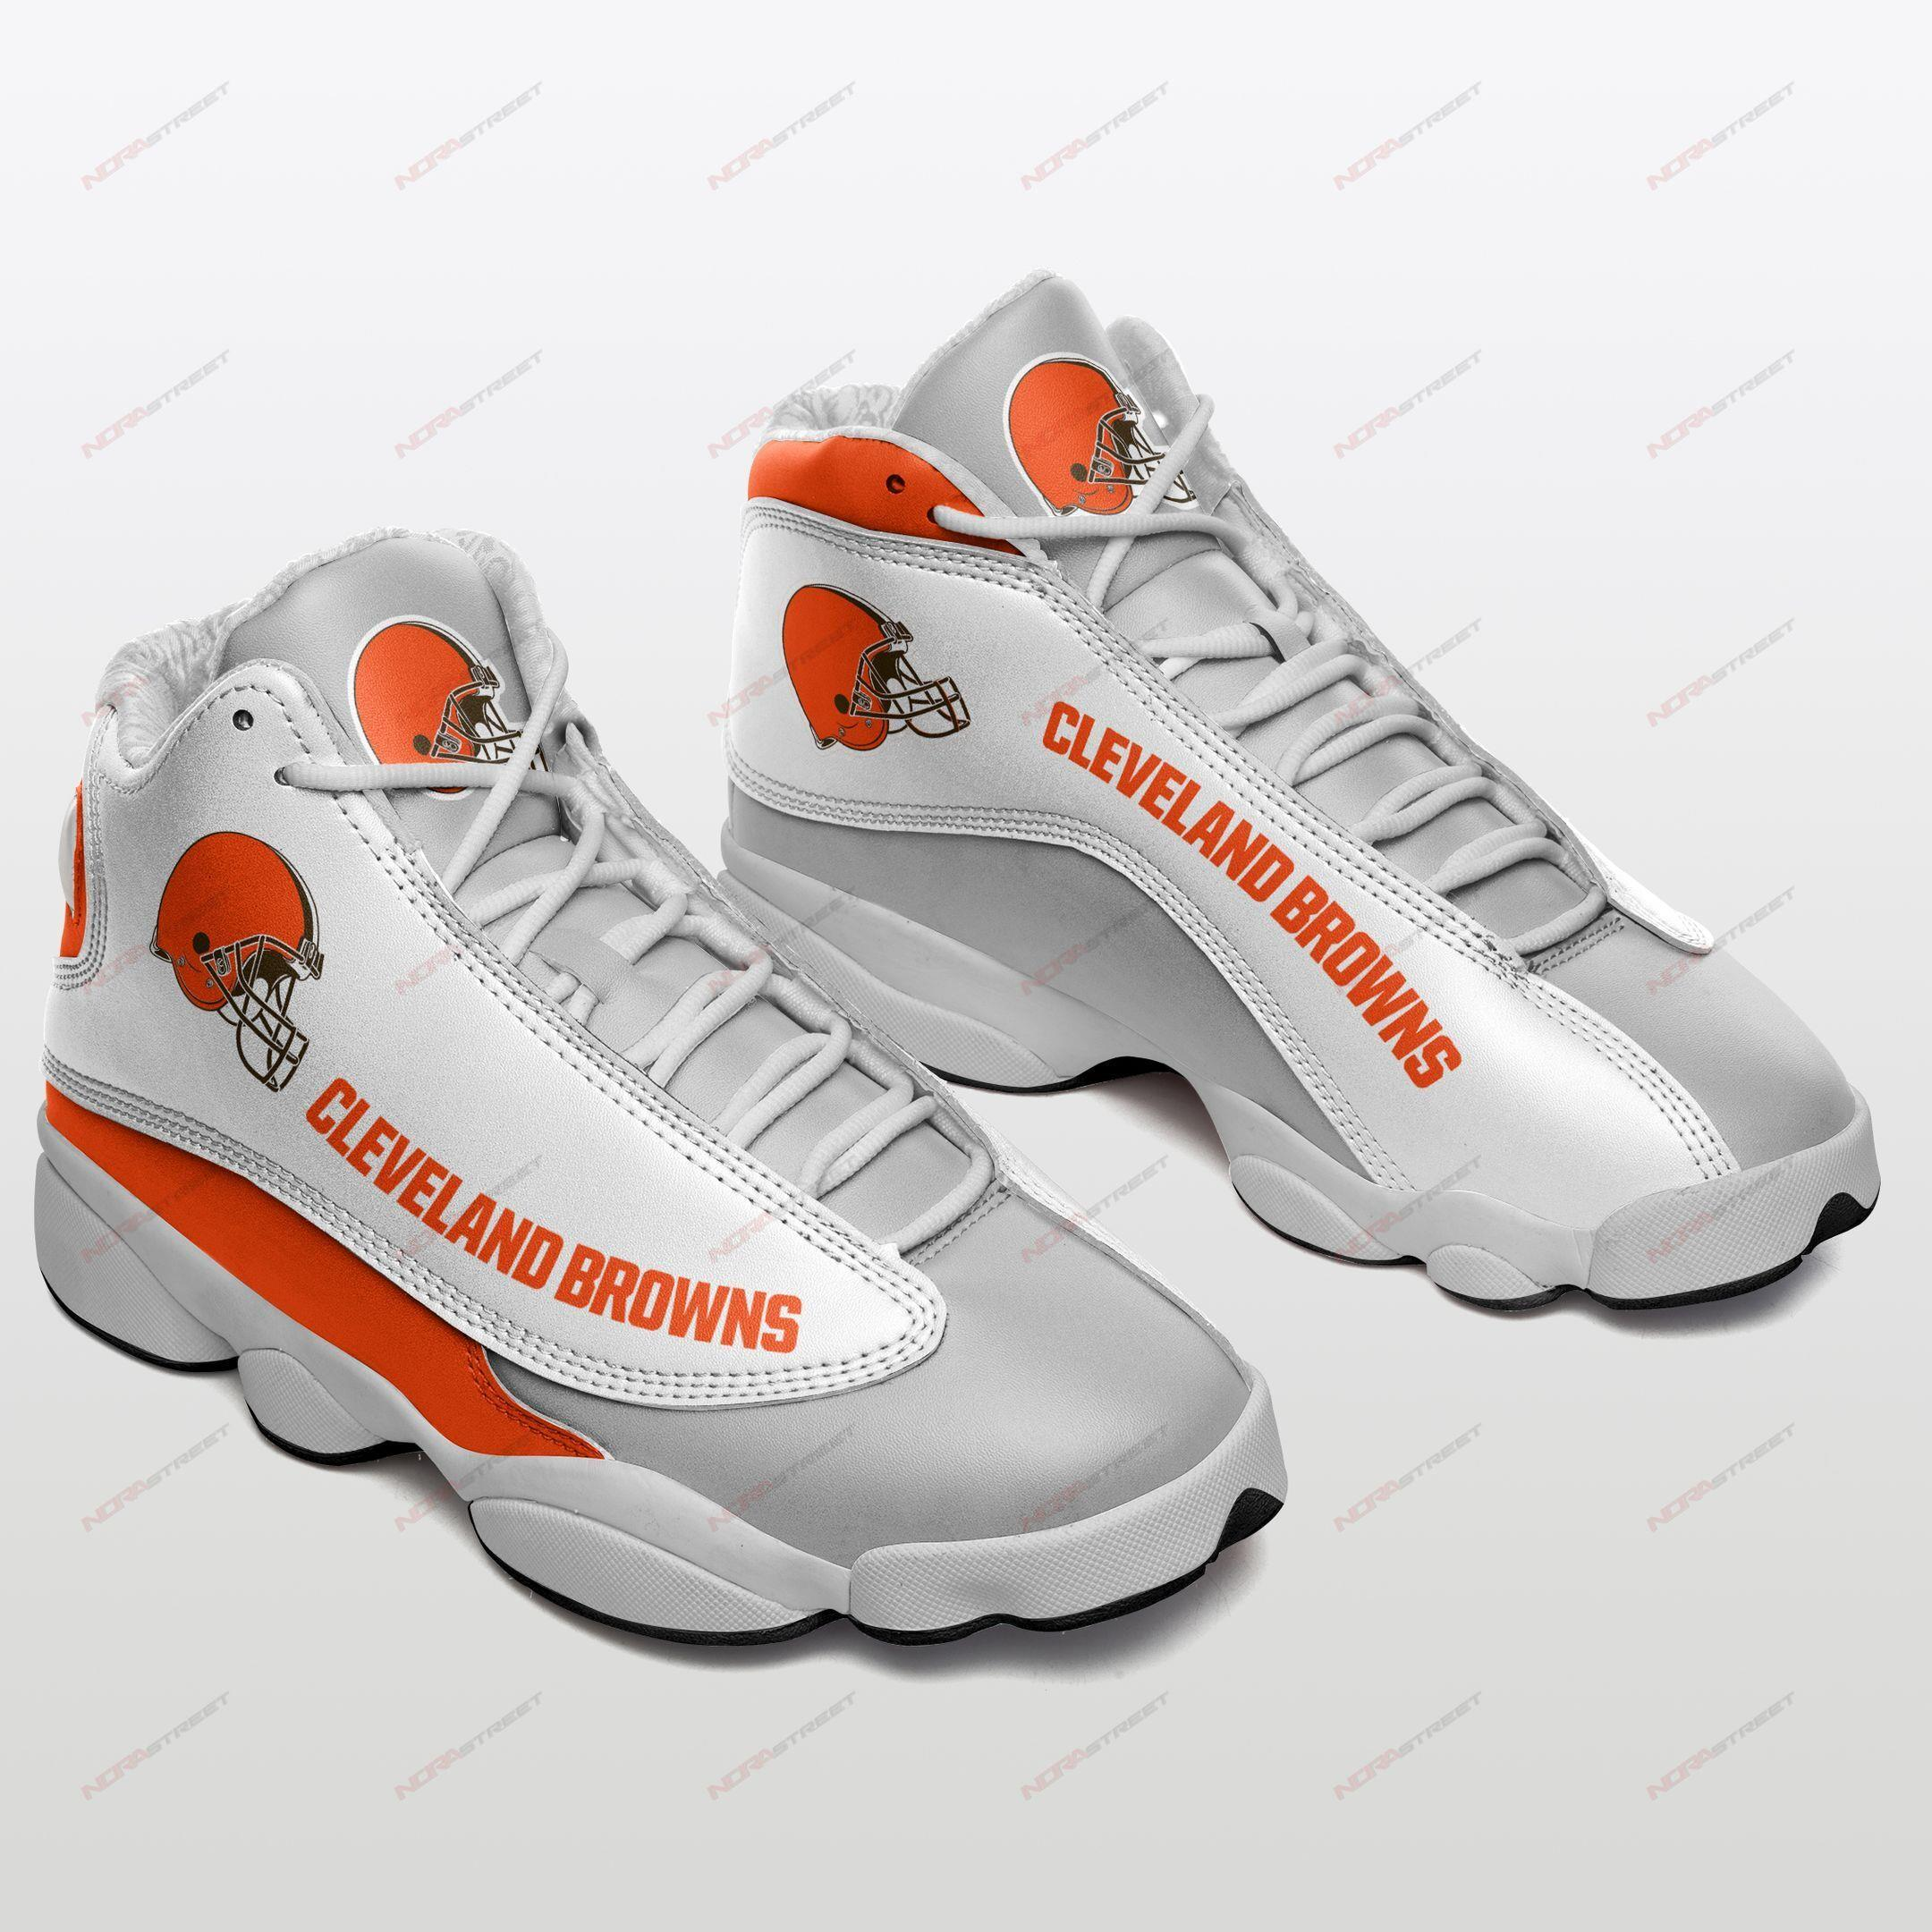 Cleveland Browns Air Jordan 13 Sneakers Sport Shoes Full Size